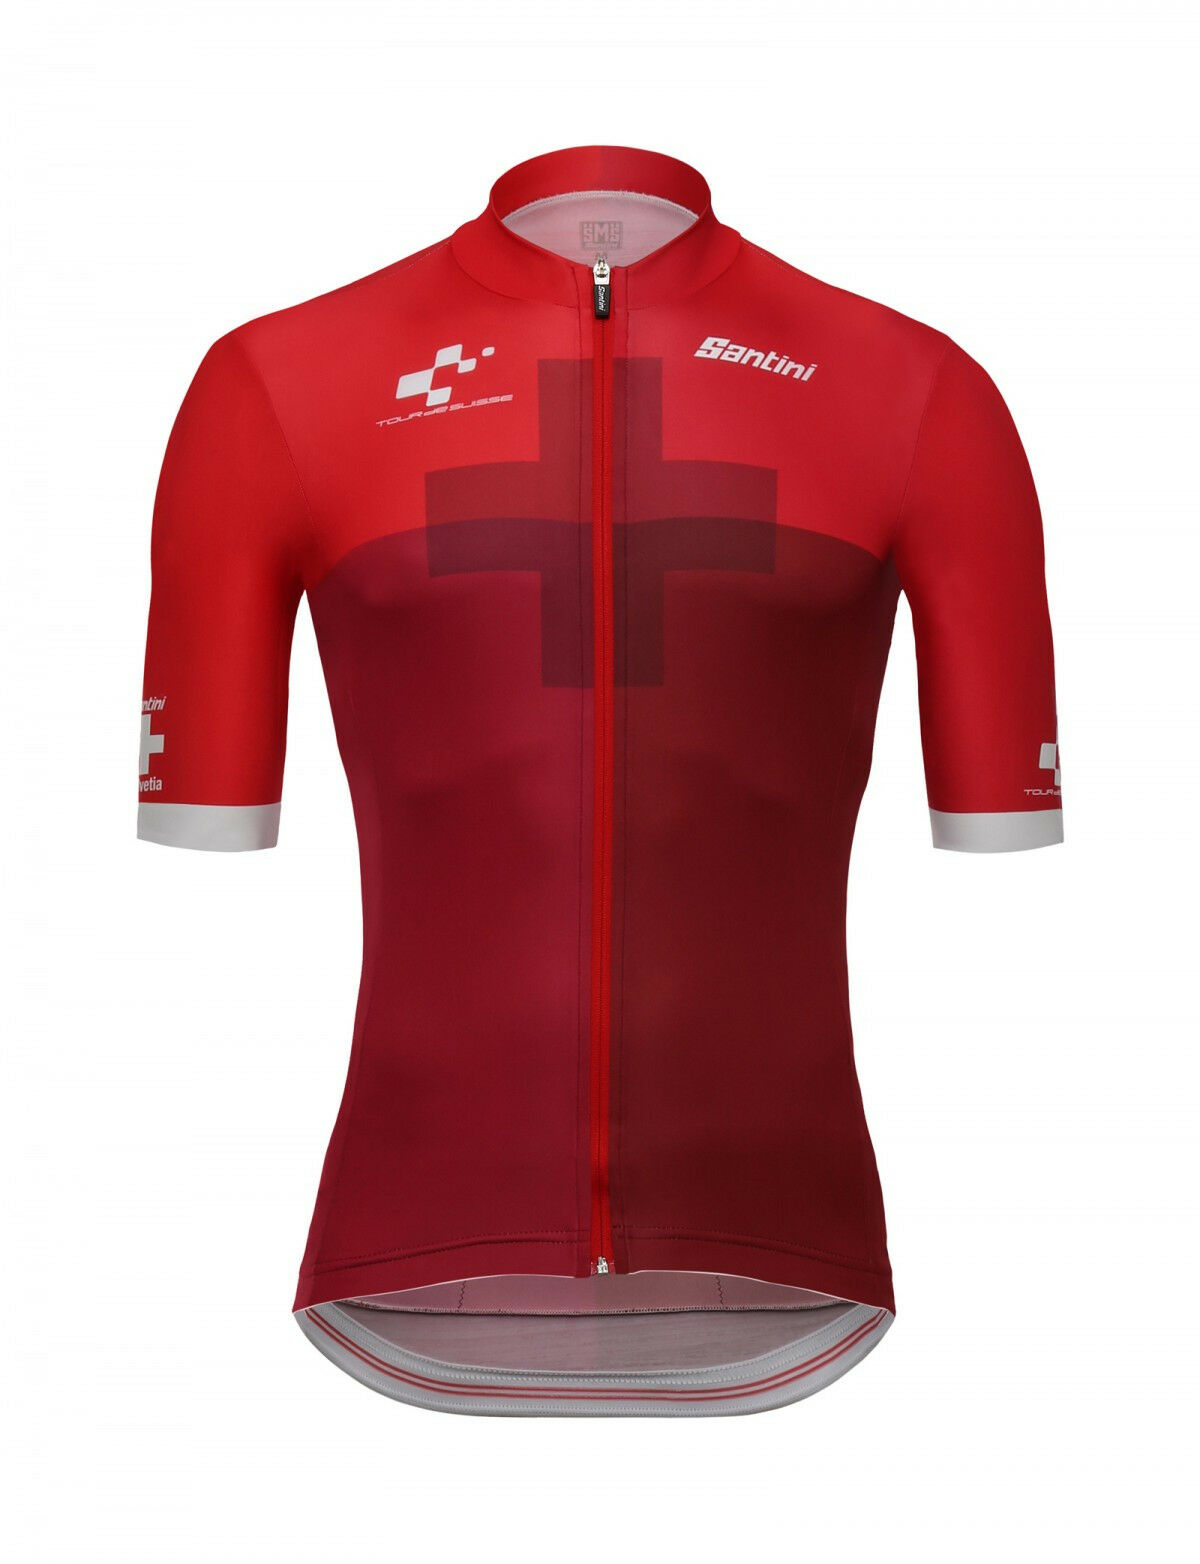 RED JERSEY TOUR DE SWISS 2018 Size XXL